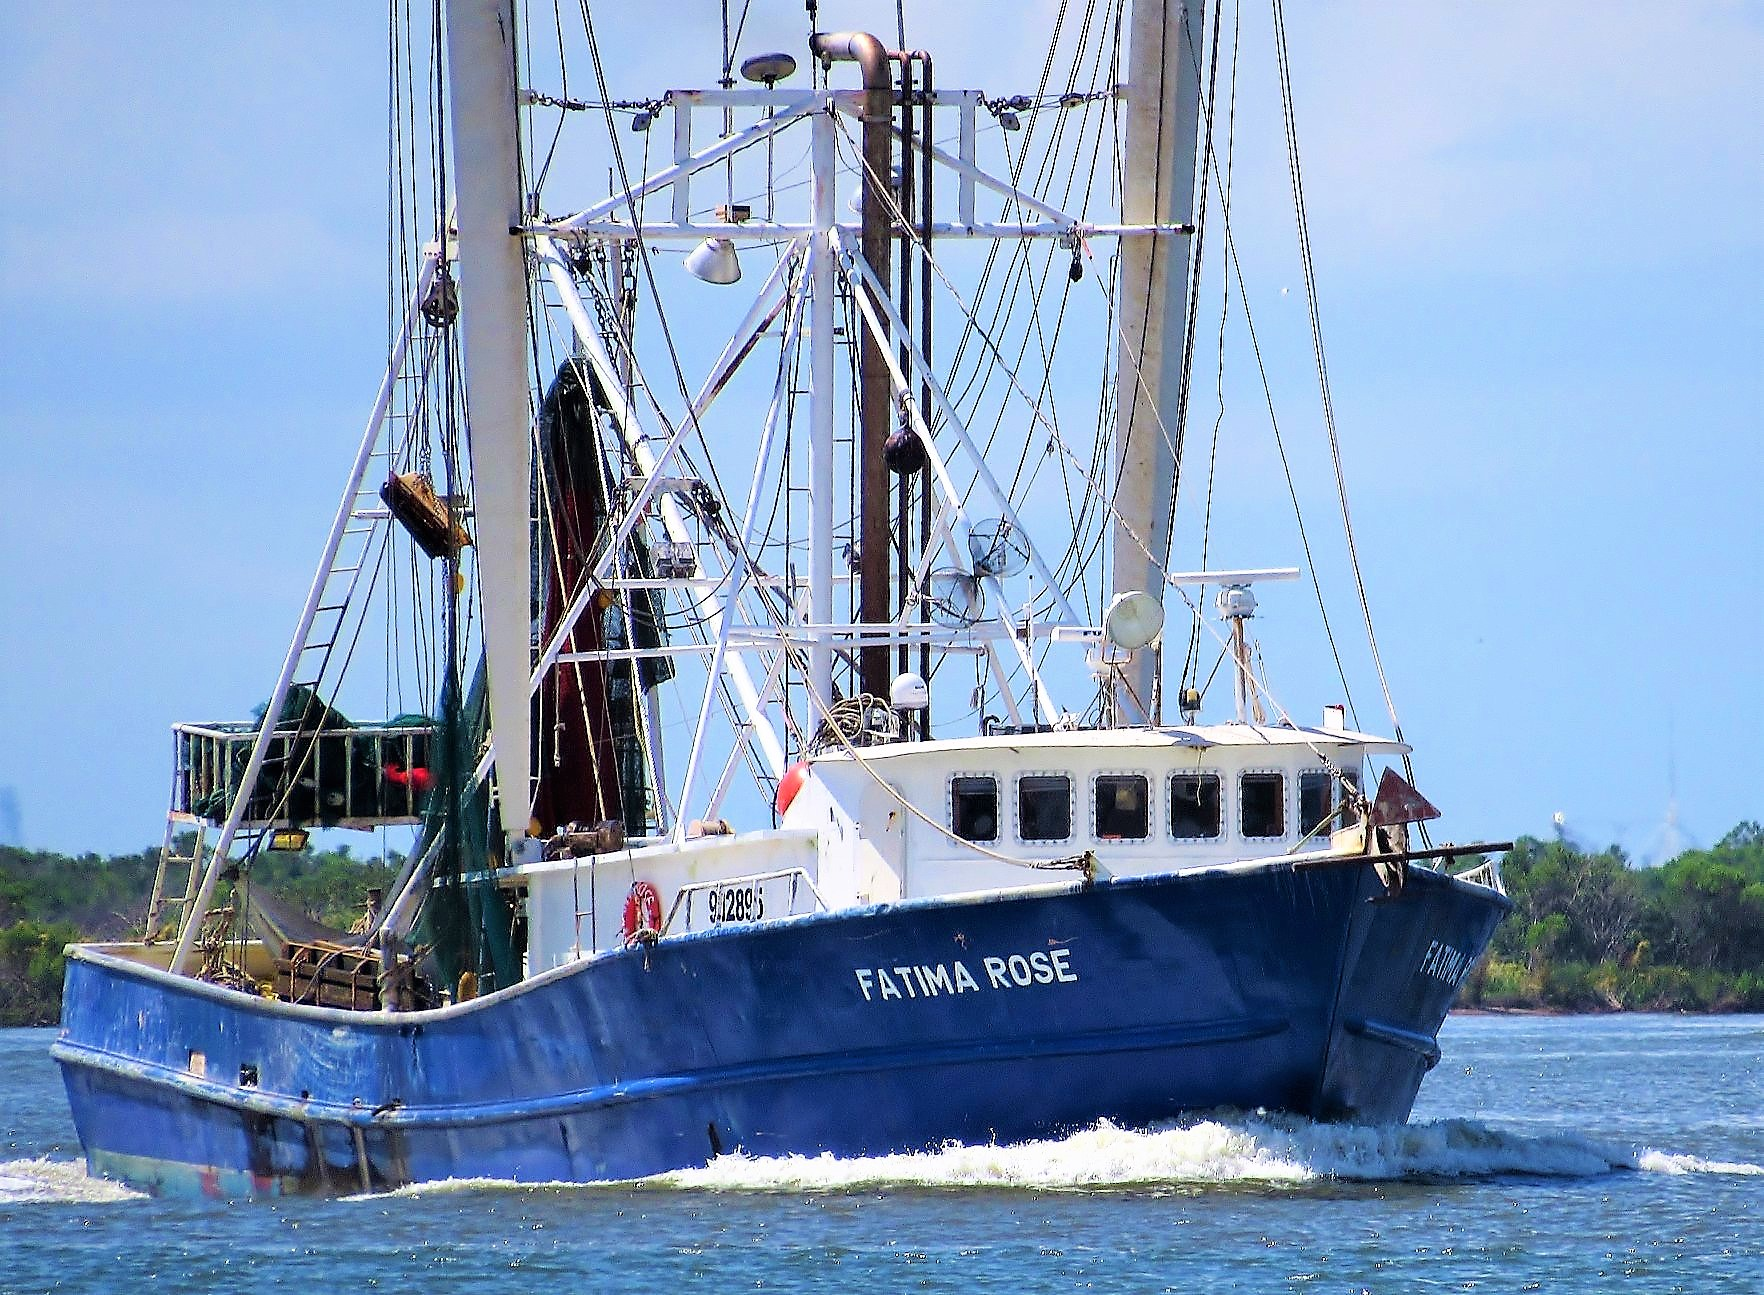 Our Boats - Our boats have been fishing for three generations. Give us a try, and you will be amazed at the quality, service and unbeatable price!Visit our store >>>